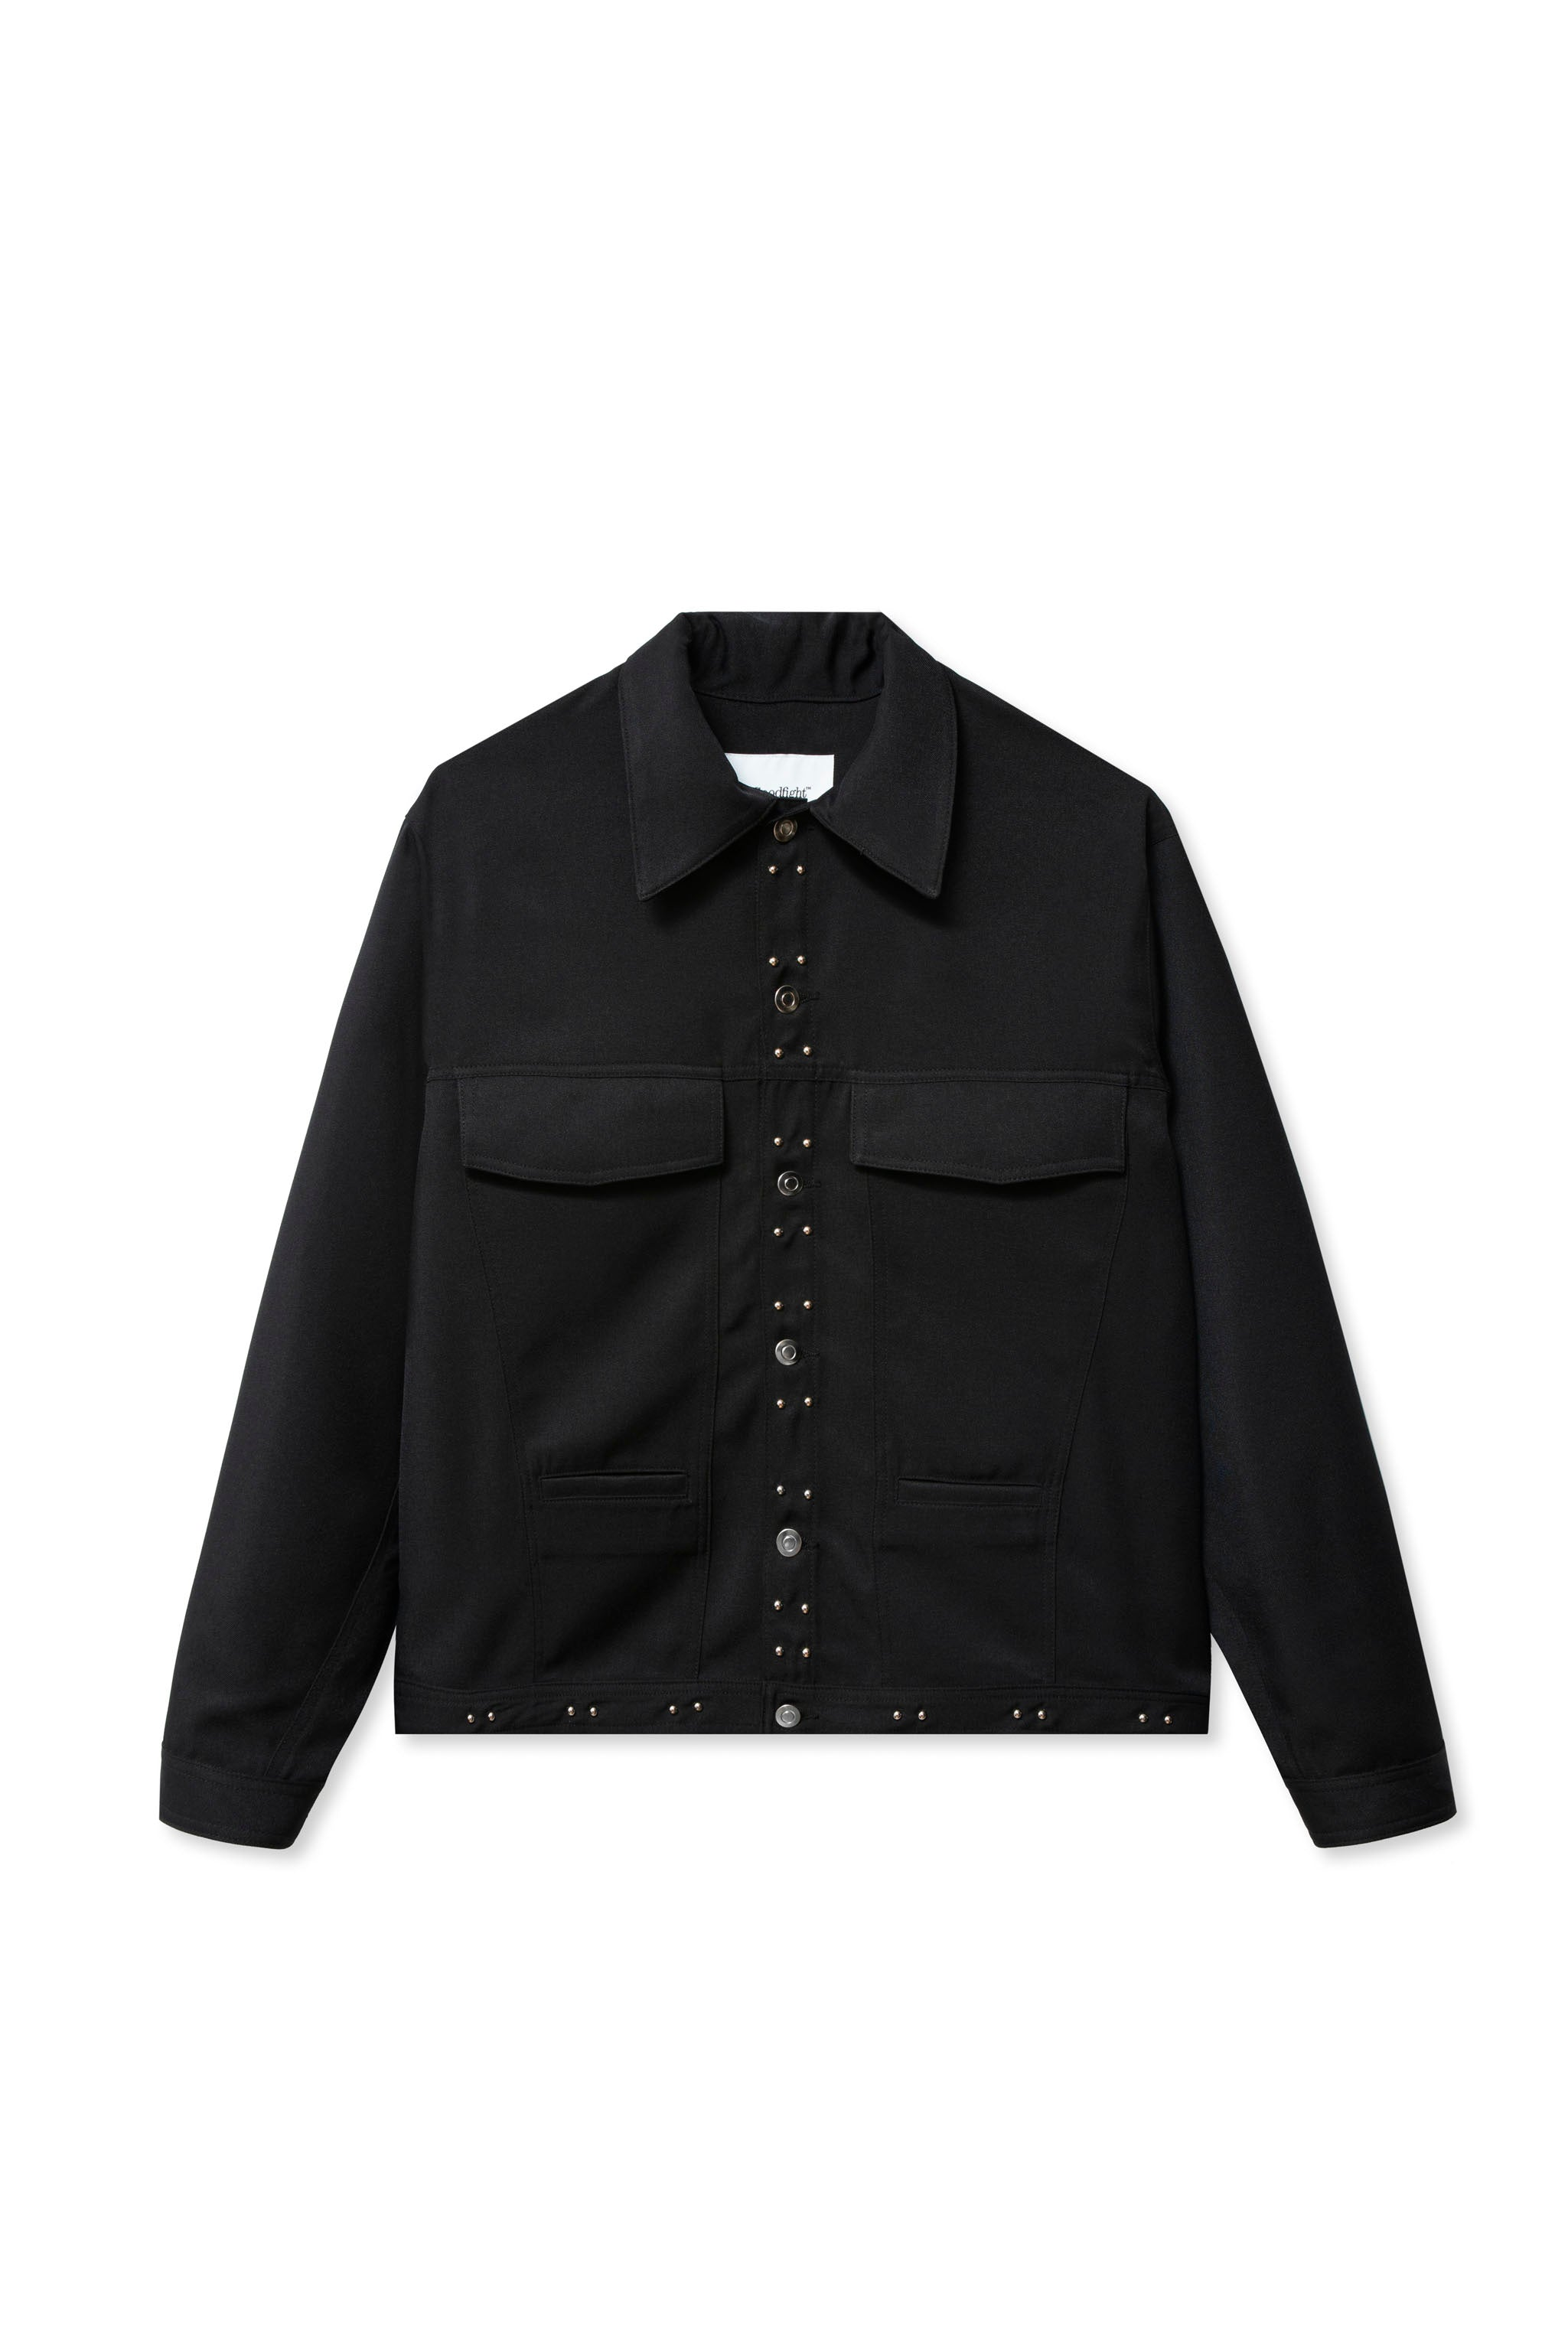 Goodfight Plaza Trucker Jacket Black Polysuiting